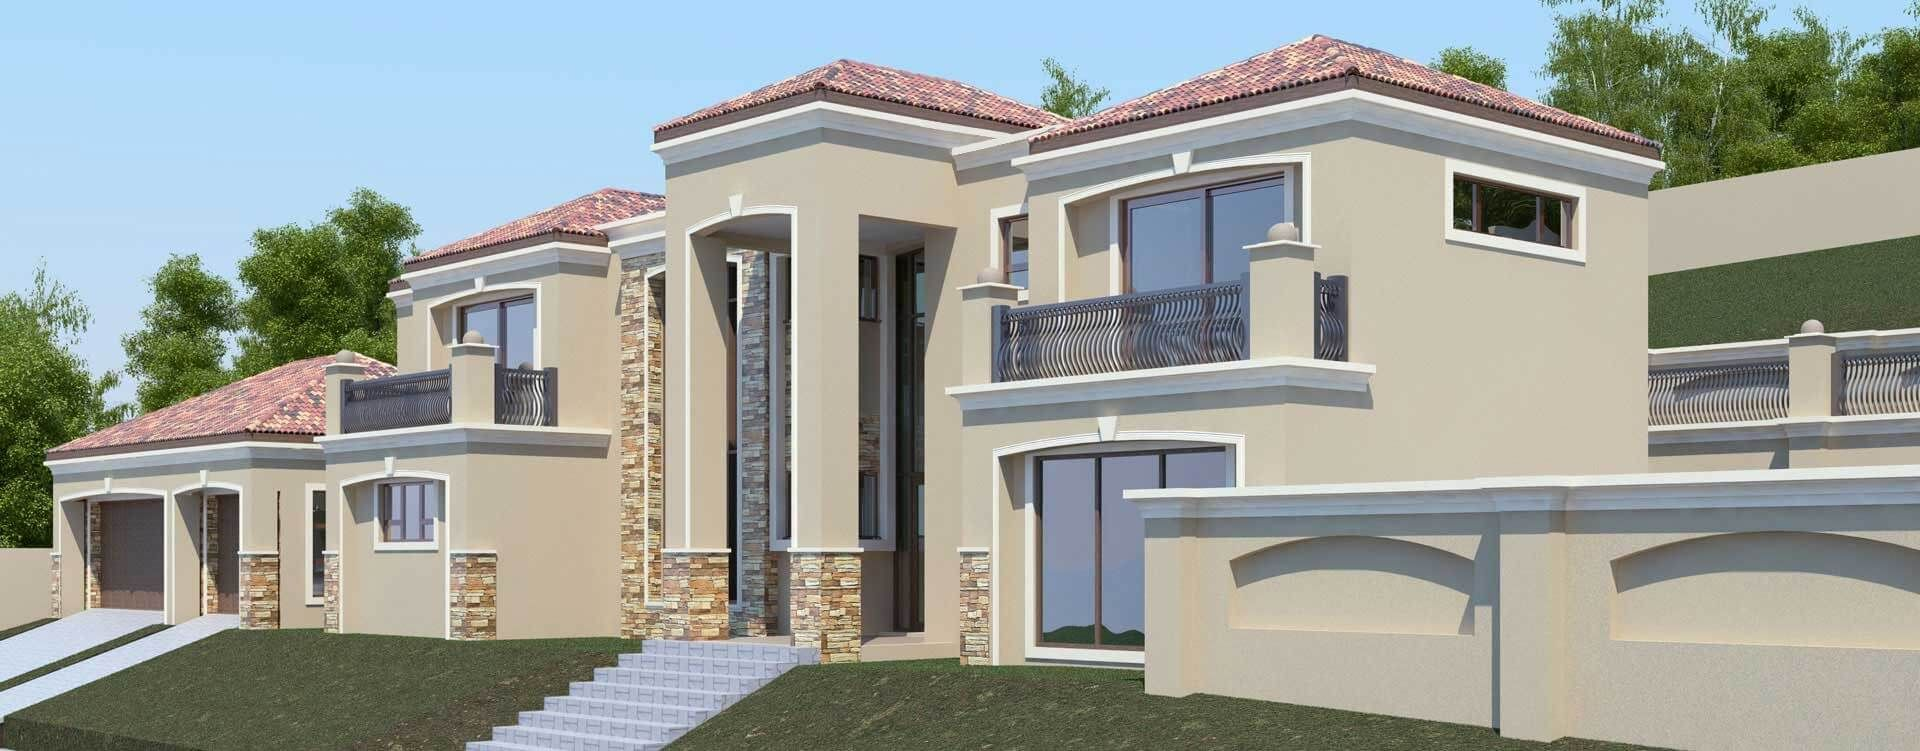 House Plans In Gauteng Find The Best Images Of Modern House Decor And Architecture At Https Zi House Plans South Africa African House Home Design Floor Plans